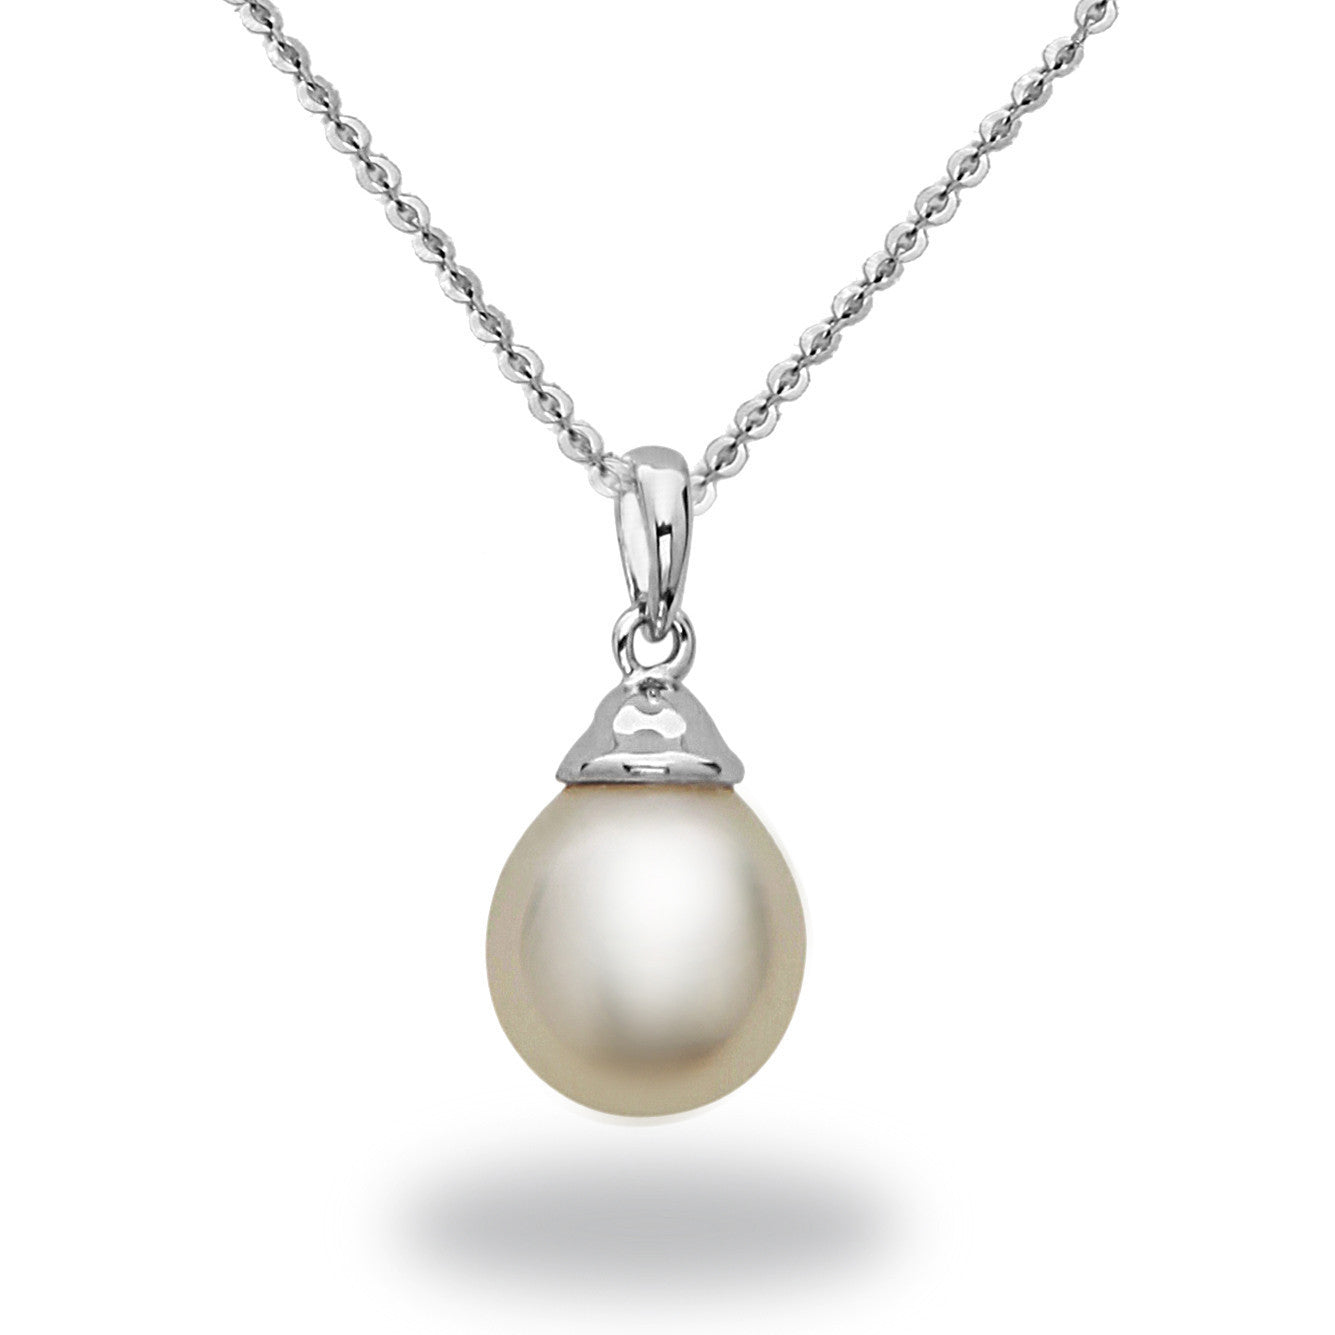 gold necklaces diamonds wid hei pearl fmt jewelry id constrain in sea ed pendants south tiffany with pendant fit